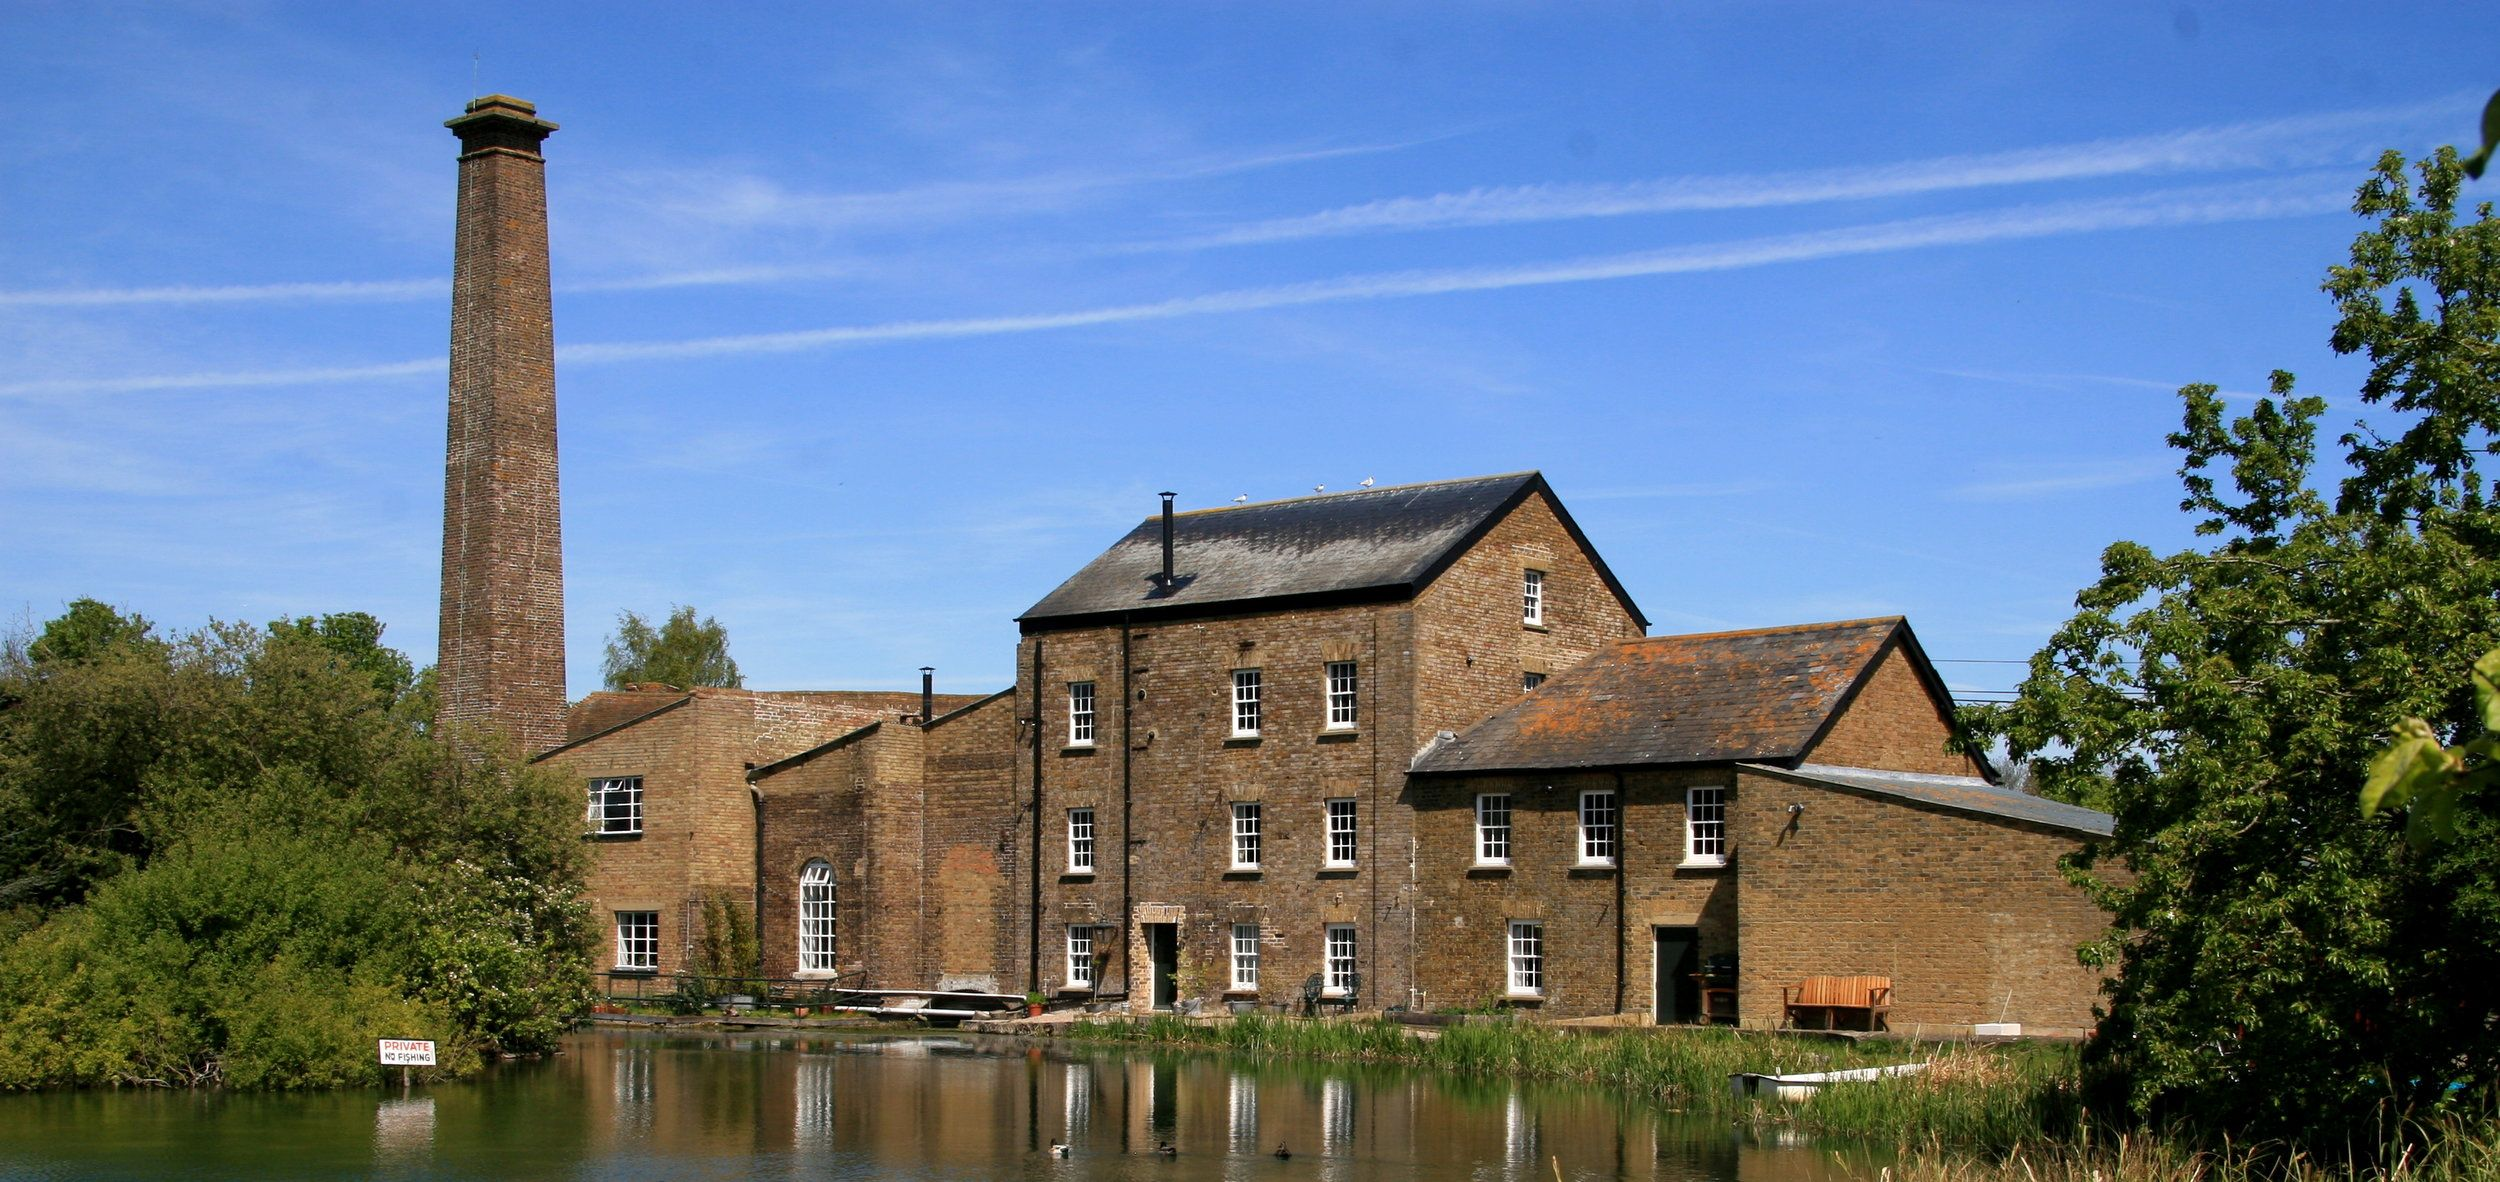 The Tonge Mill